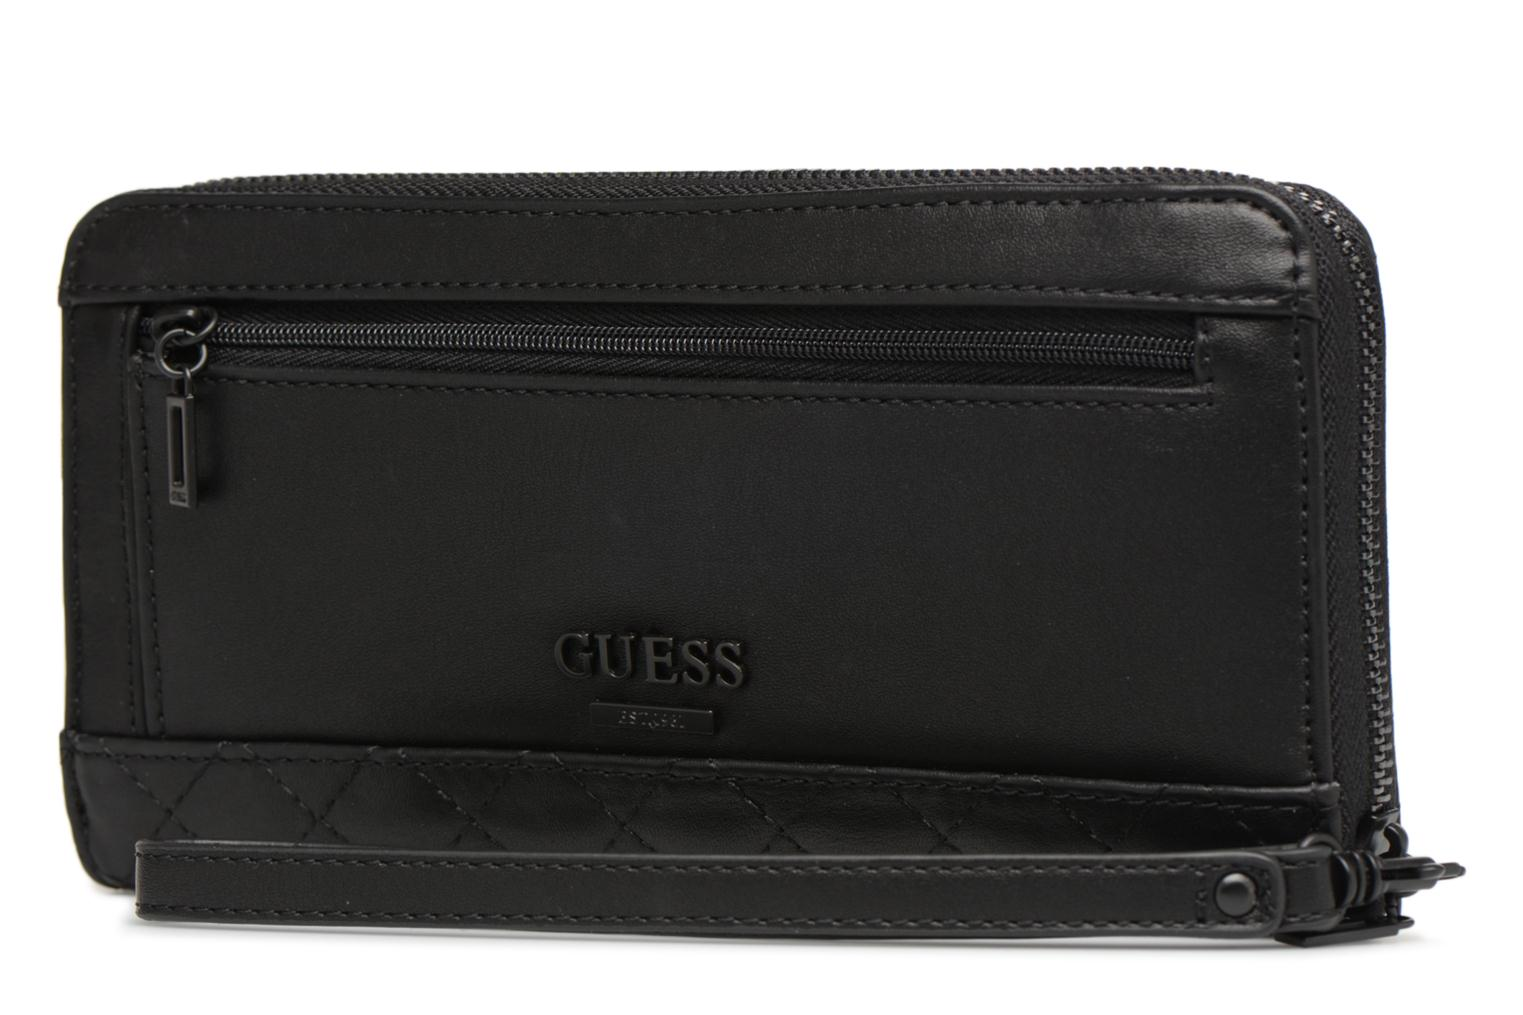 G Lux Around Guess Black Zip Large z4wT0dcq